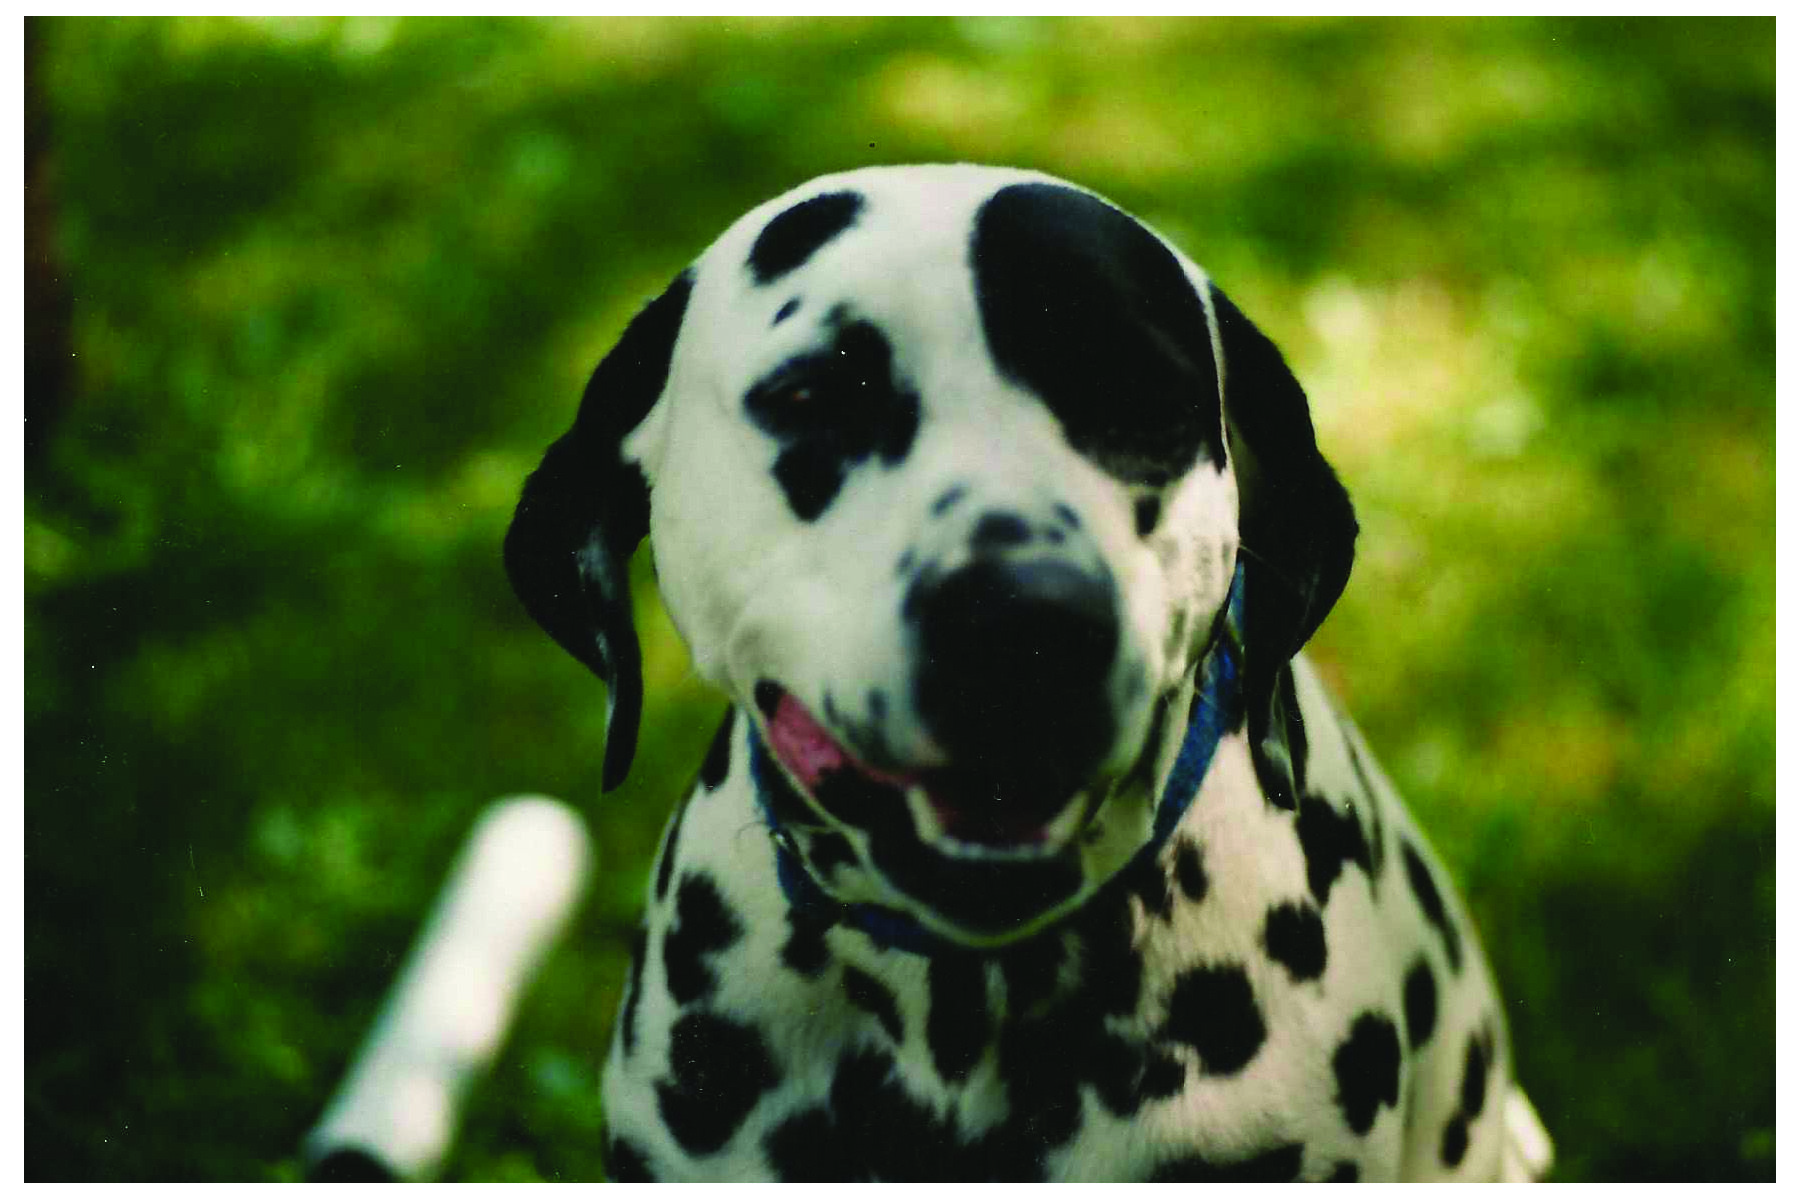 My dalmatian Patch. I had her as kid and miss her. I would definitely love to have another in our family.